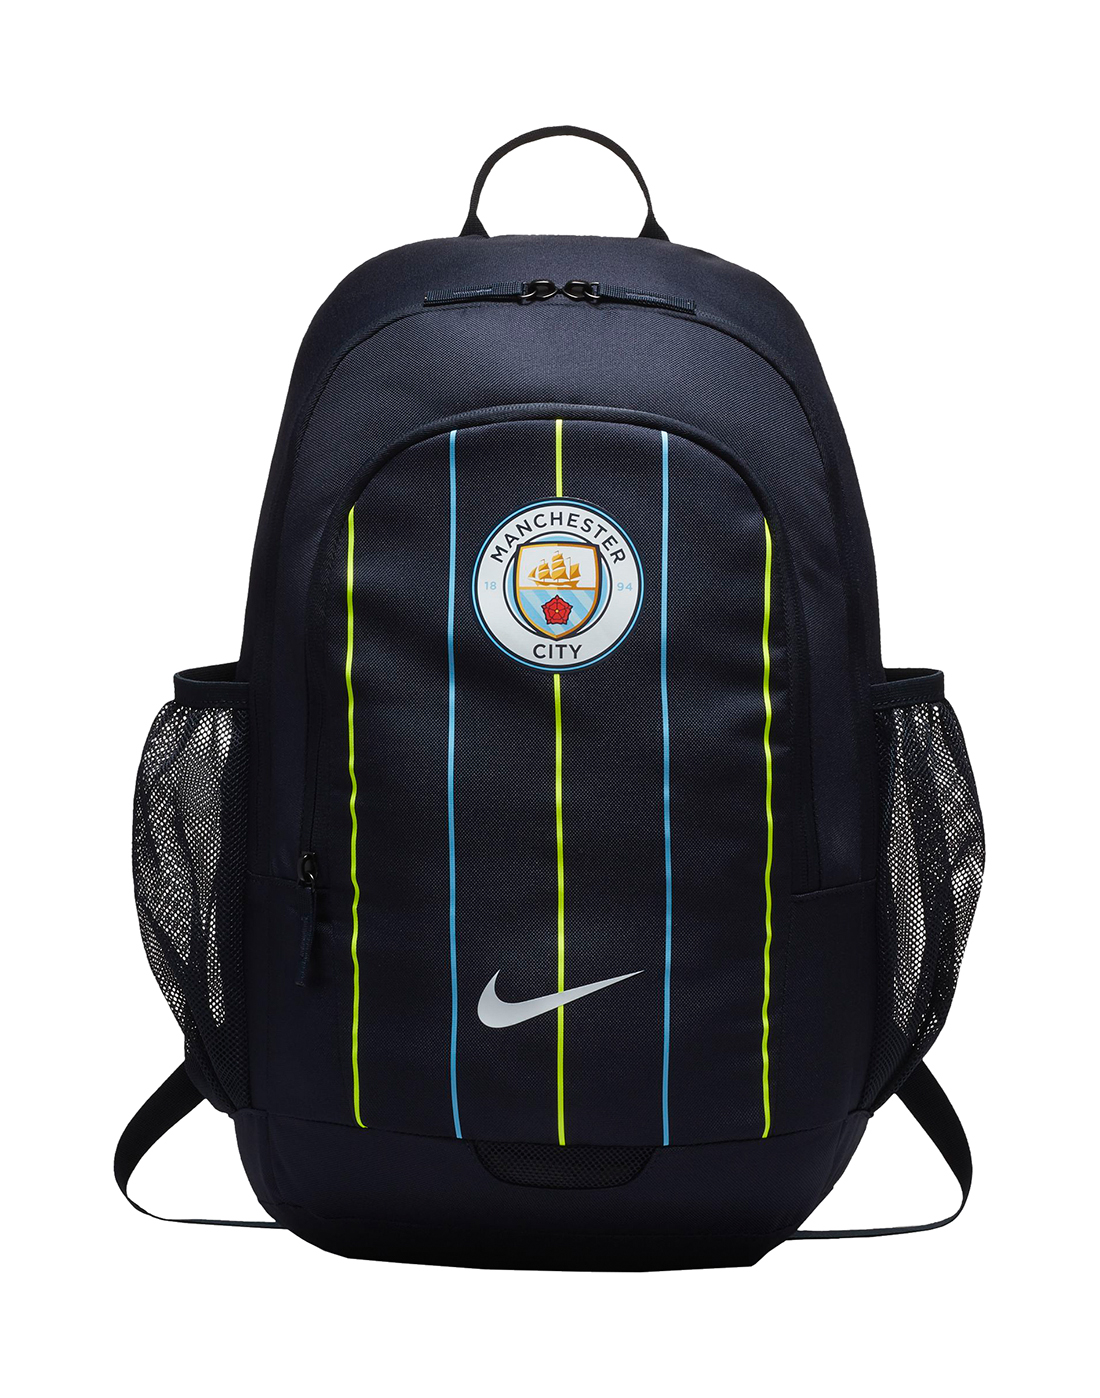 ffcb30ee2ff Manchester City Backpack | Life Style Sports